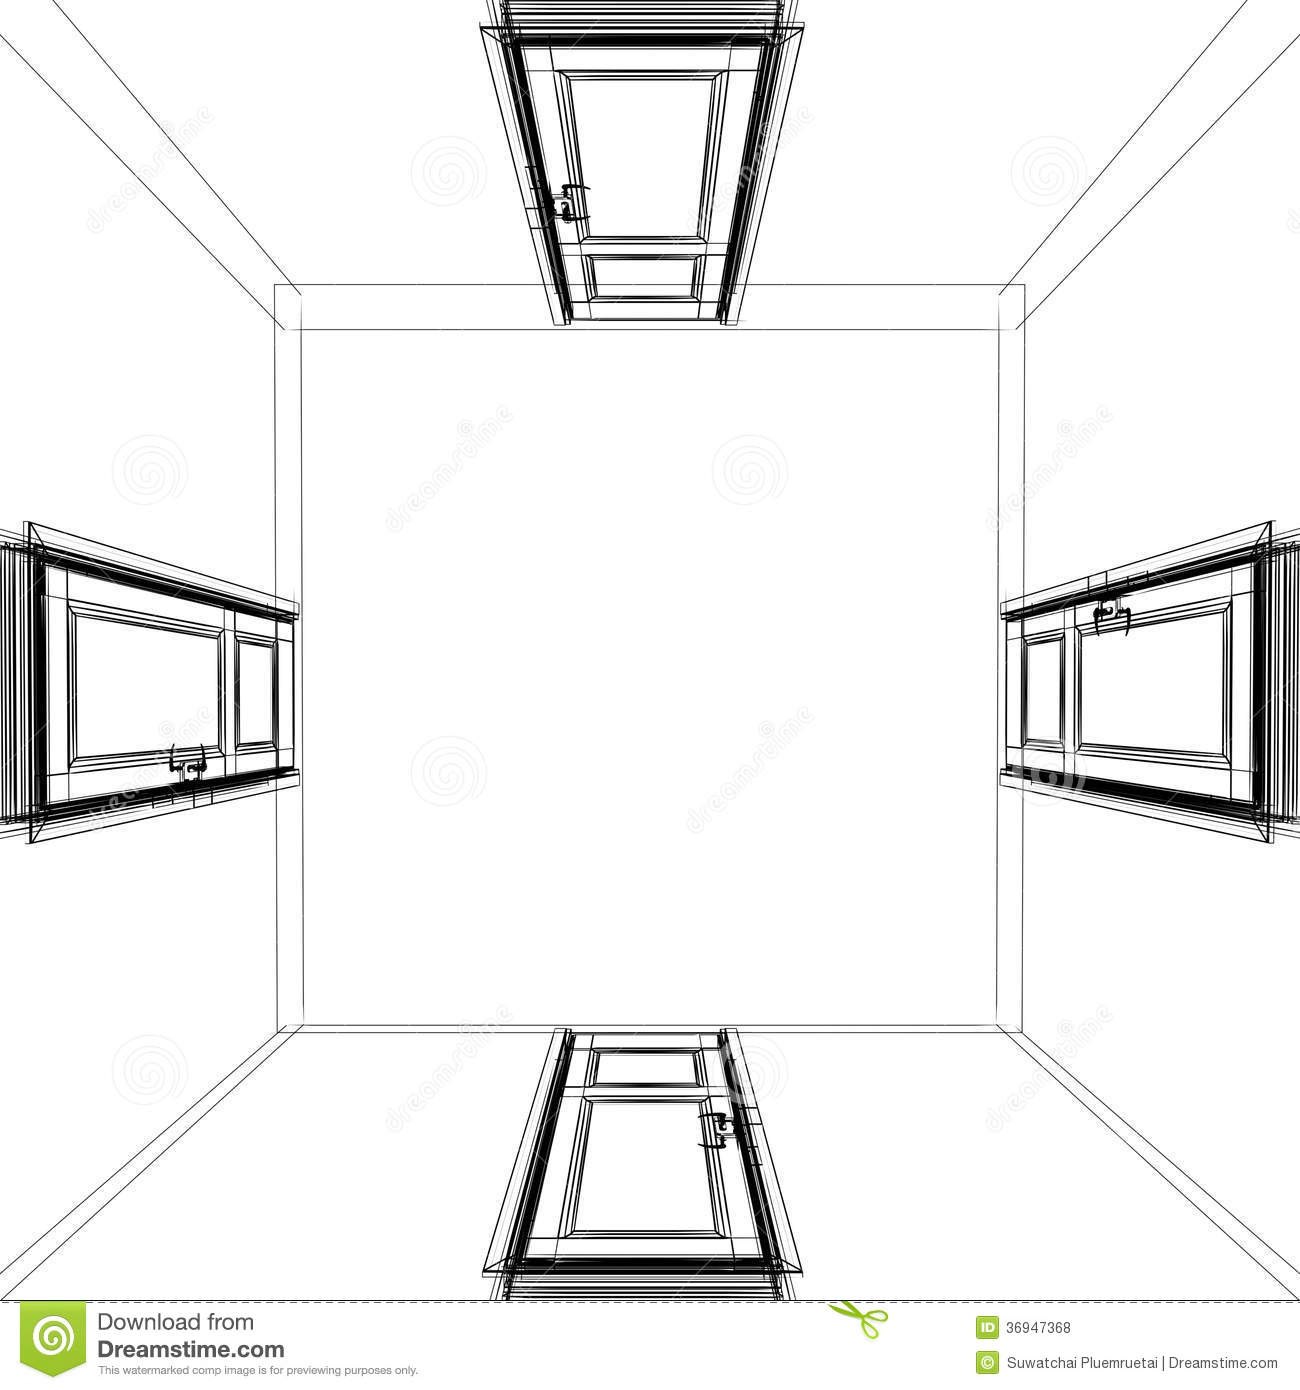 Abstract Sketch Design Of Top View Interior Room Stock